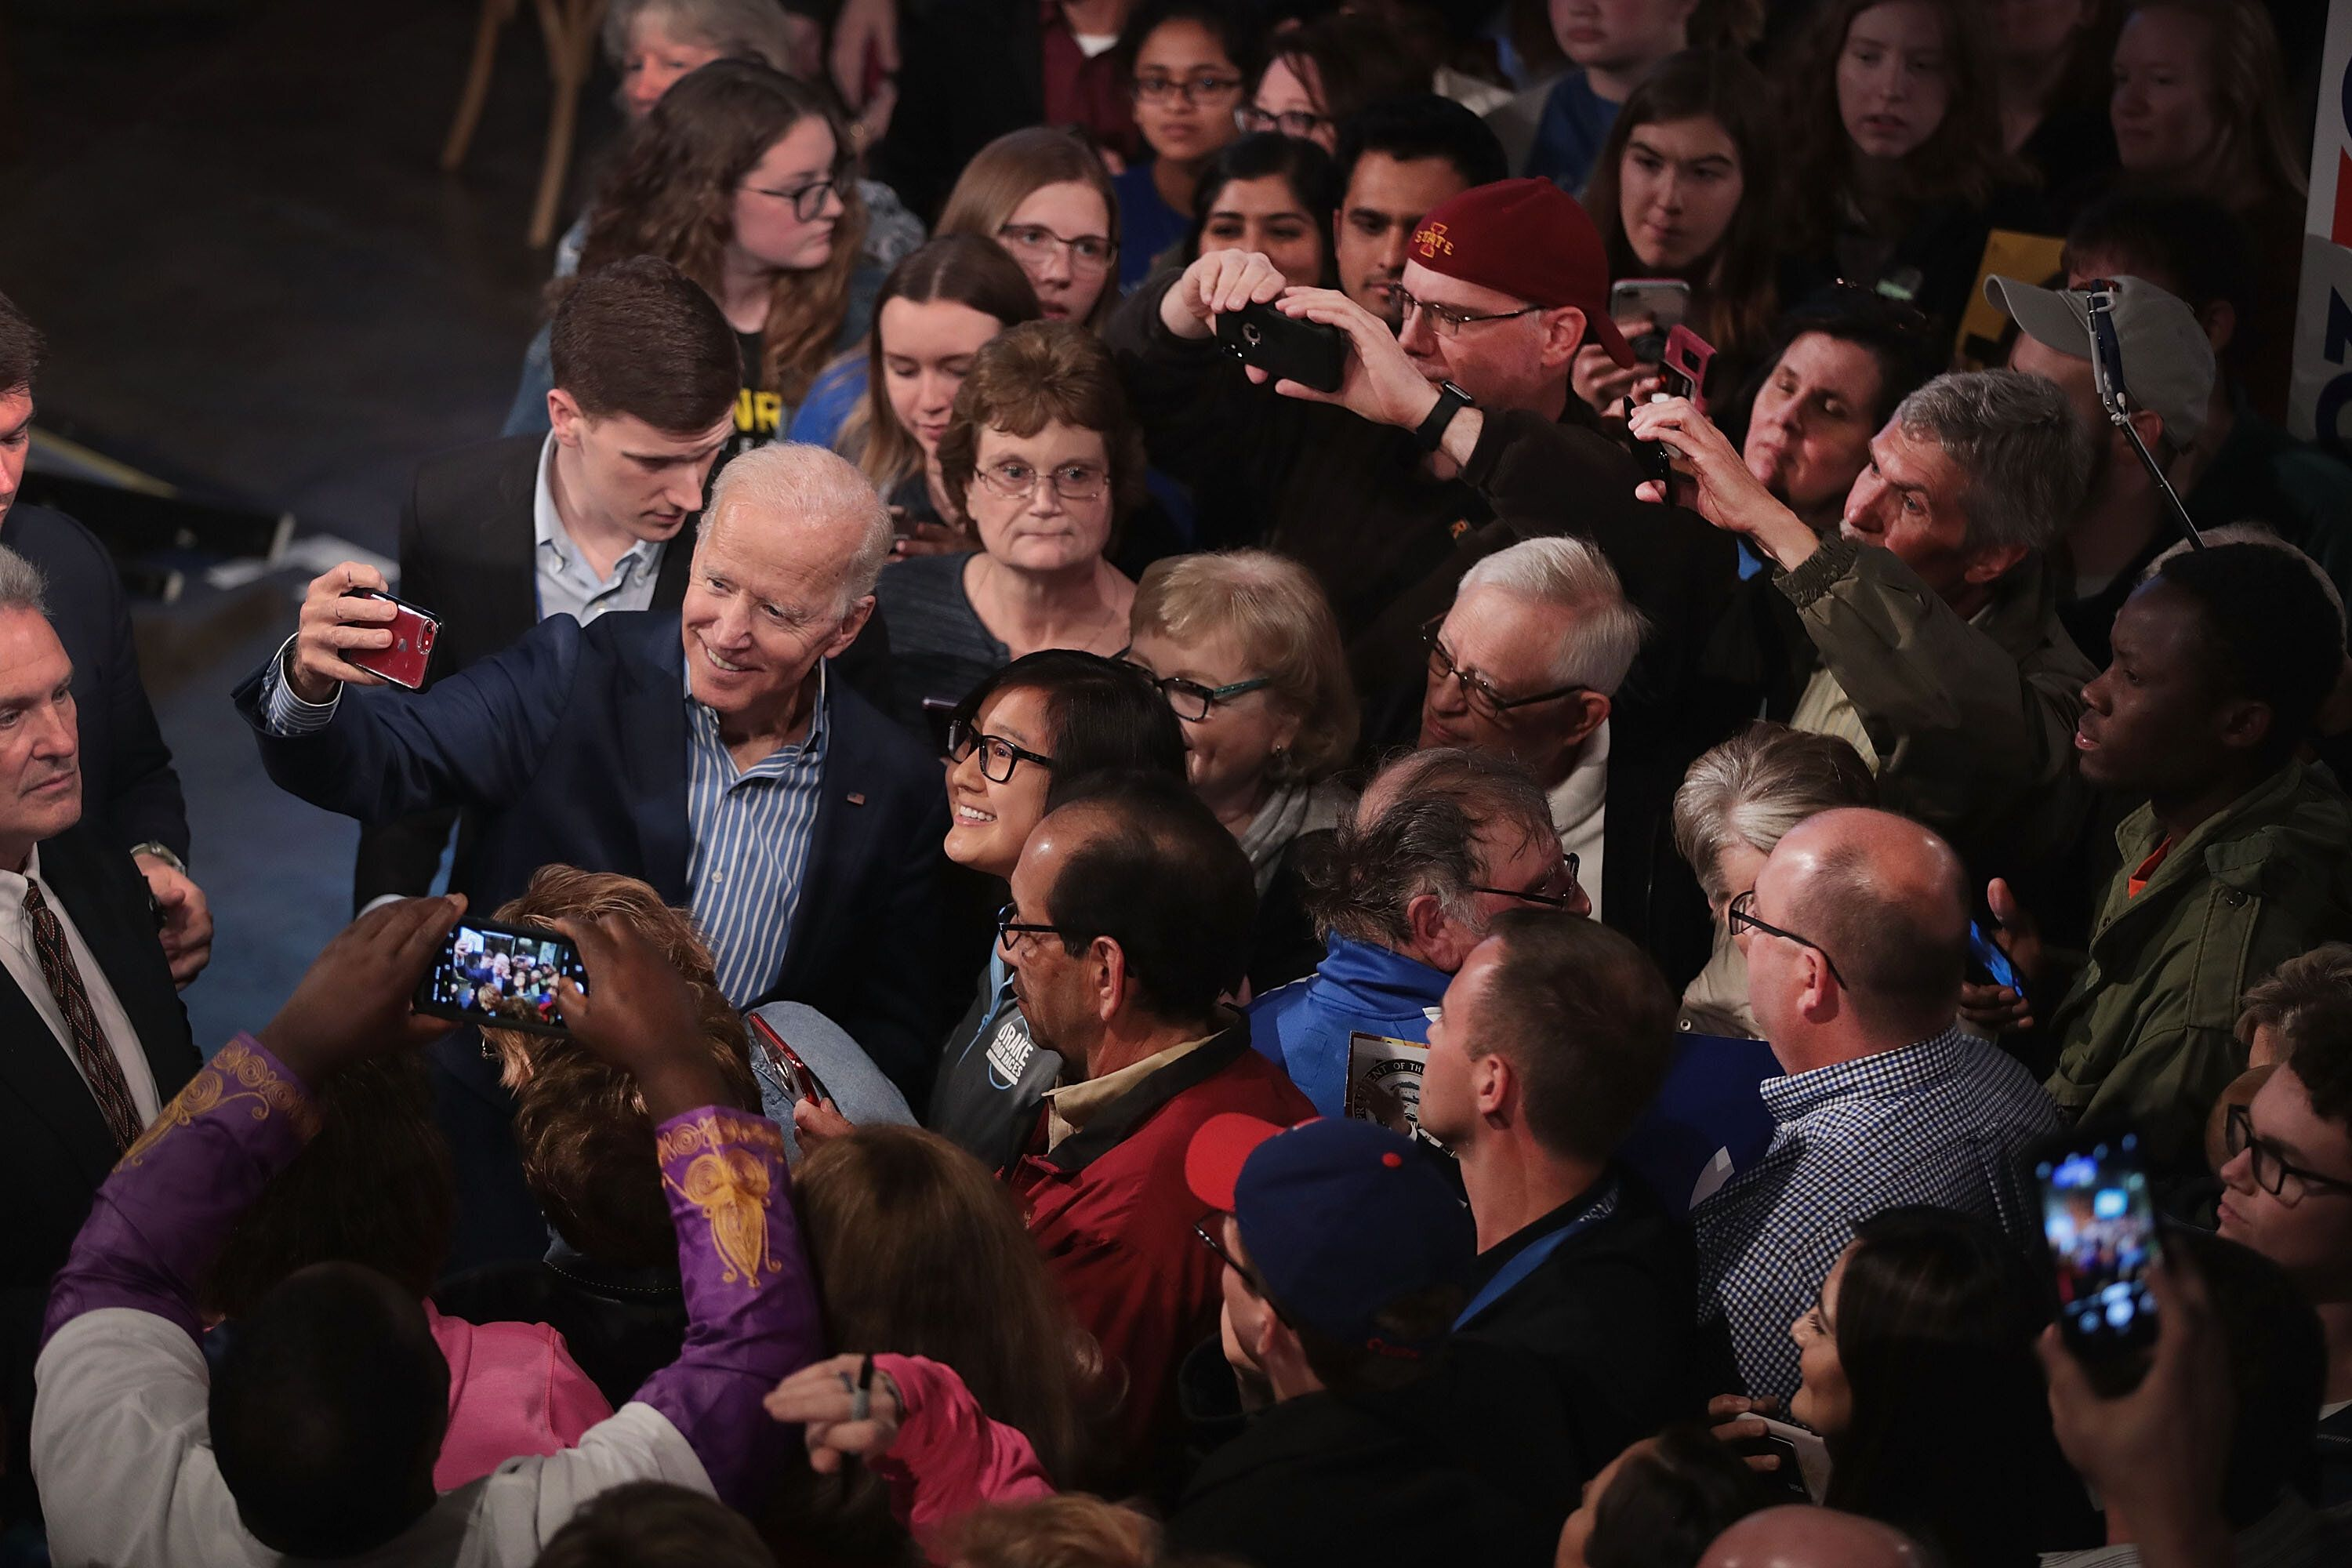 DES MOINES, IOWA – MAY 1: Democratic presidential candidate and former vice president Joe Biden greets guests during a campaign event at The River Center on May 1, 2019 in Des Moines, Iowa. The event was Biden's final rally in the state, wrapping up his first visit since announcing that he was officially seeking the Democratic nomination for president.   (Photo by Scott Olson/Getty Images)